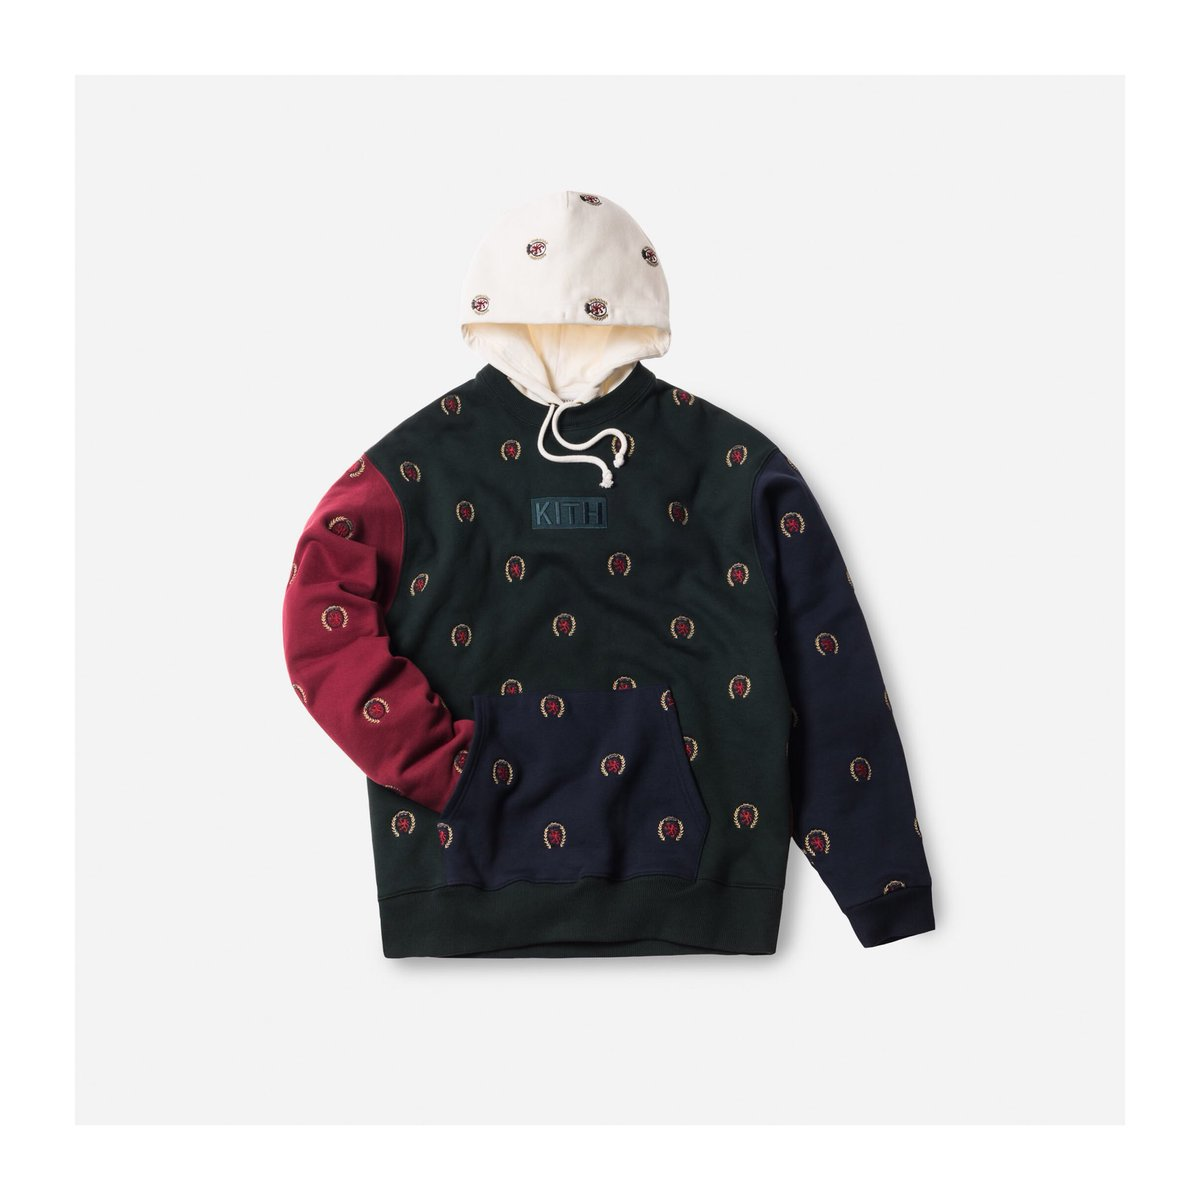 18eb8da3 Releasing this Saturday at all Kith shops and at 11AM EST on http://Kith.com  pic.twitter.com/ZNe66Jv4hp